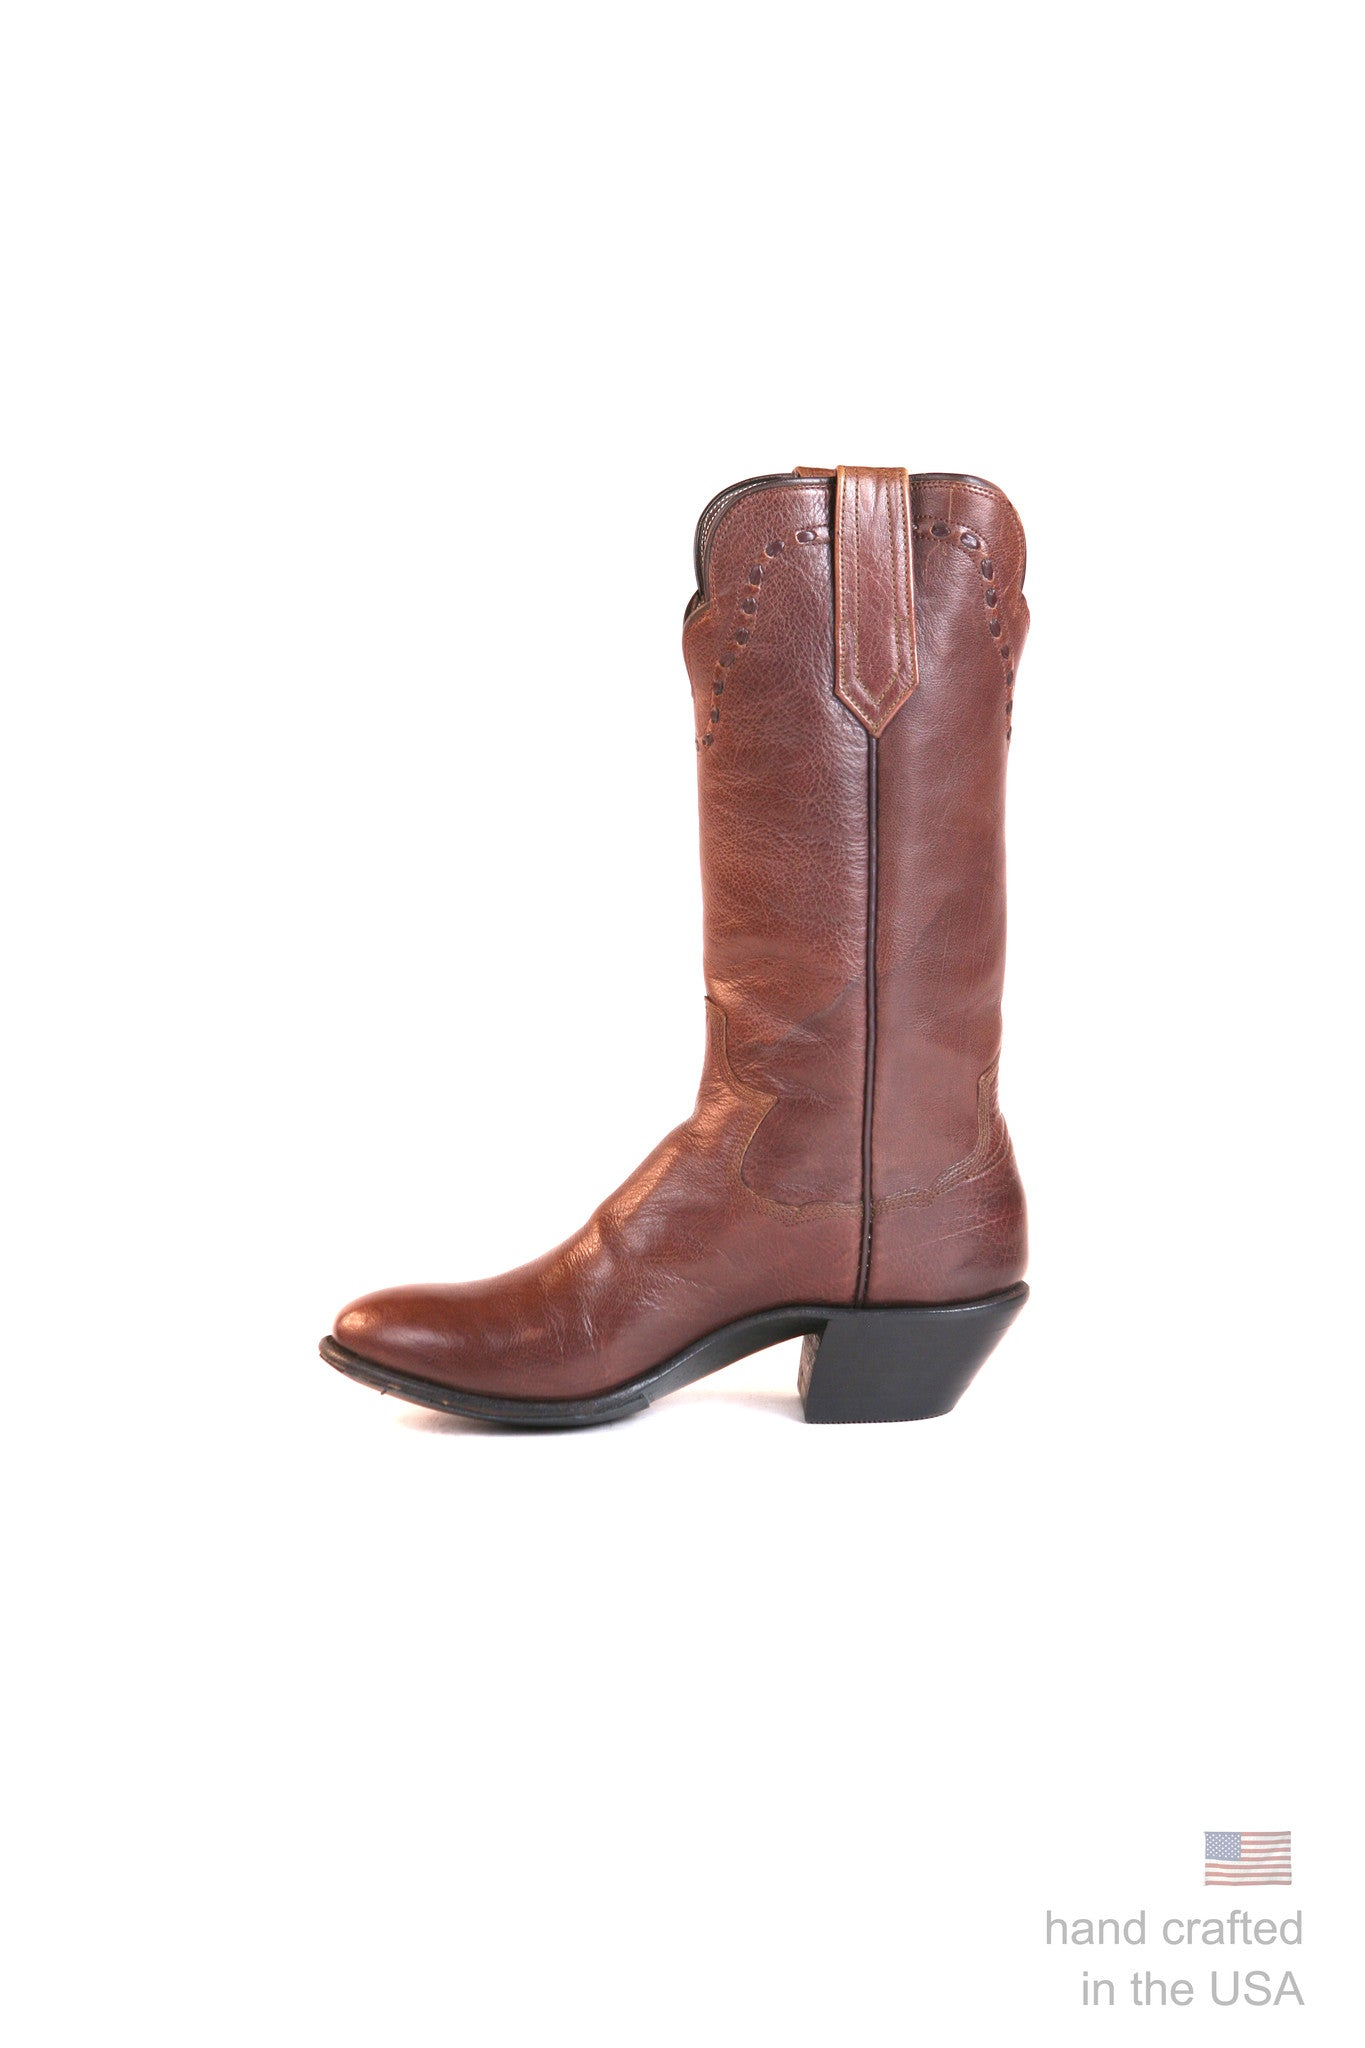 Singles: Boot 0076: Size 6.5 A